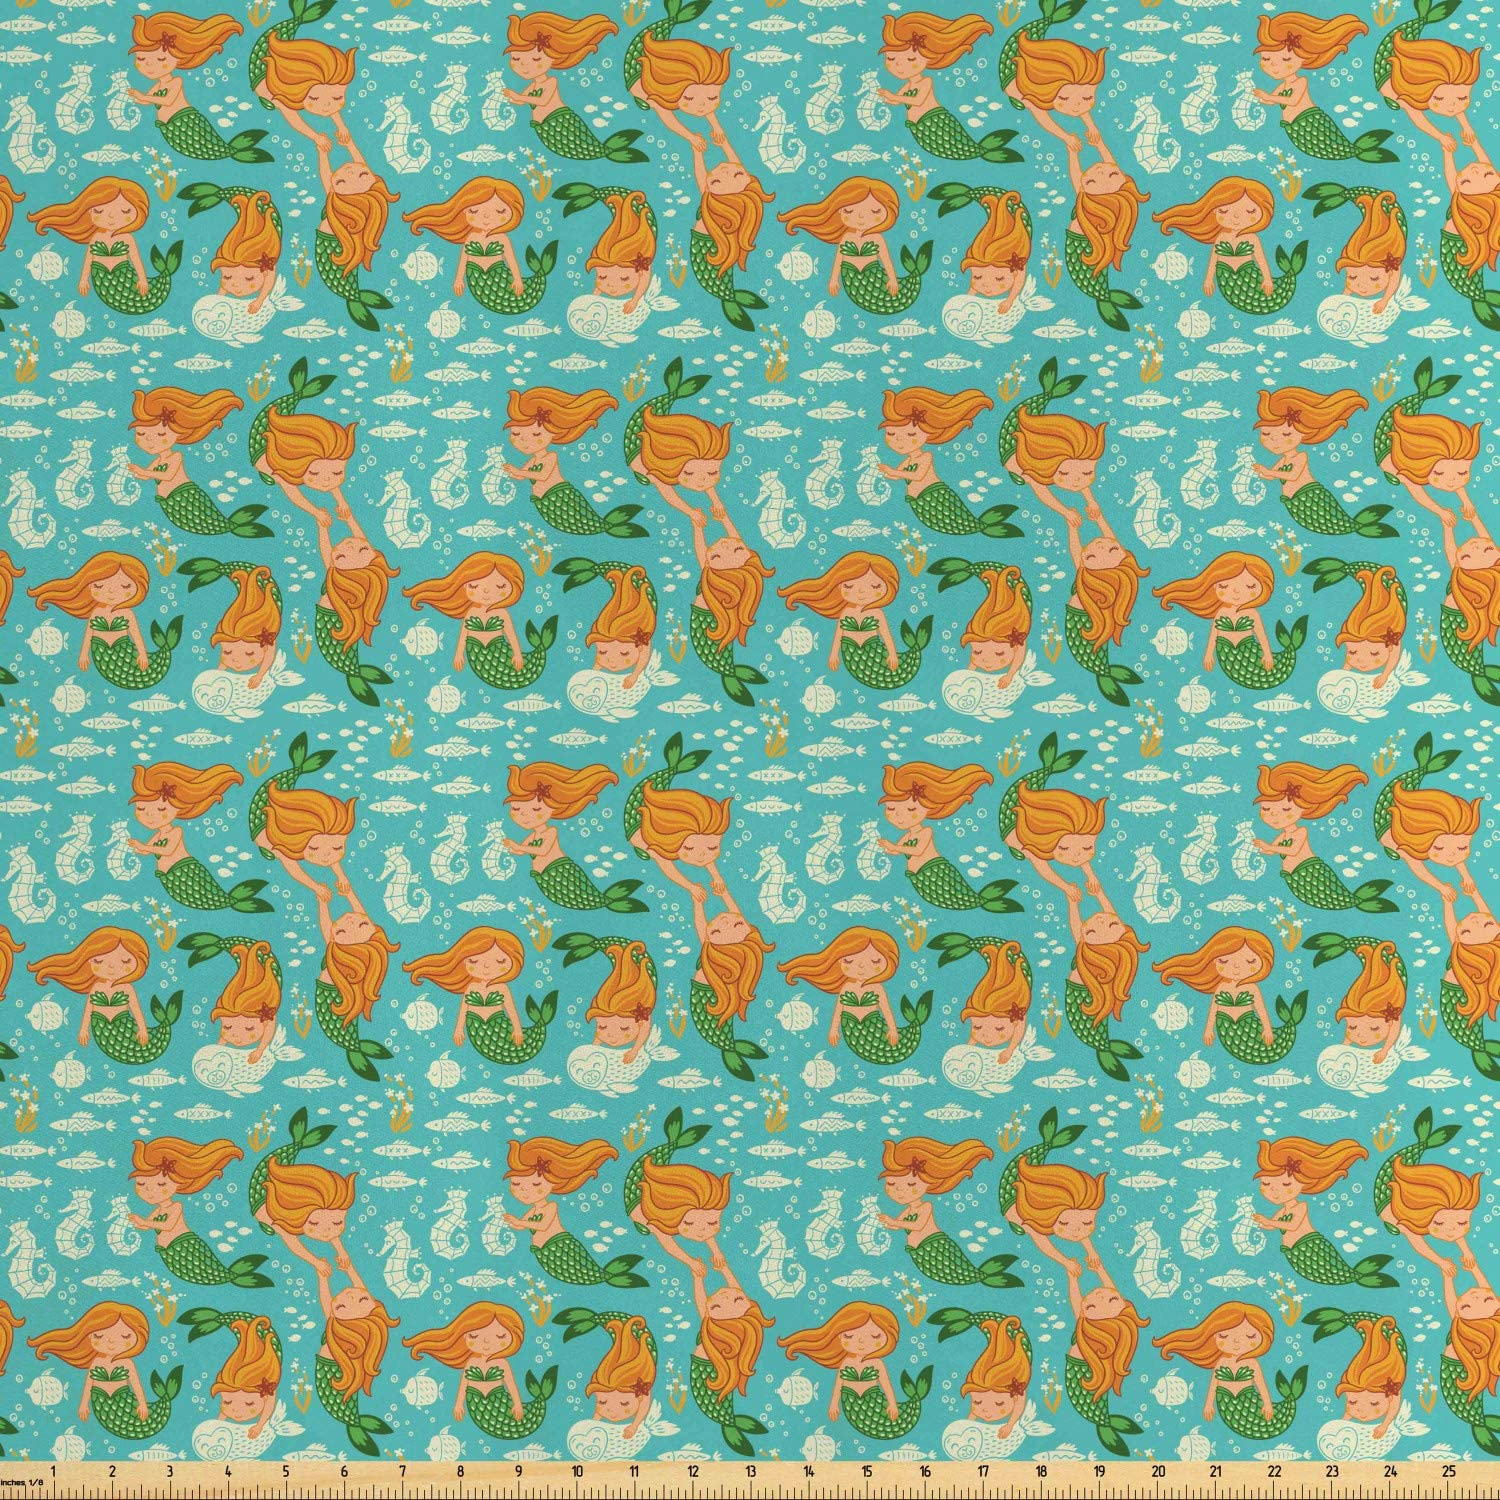 Ambesonne Underwater Fabric by The Yard, Underwater World Little Mermaid Girls Friends Seahorse Fish Shells, Decorative Satin Fabric for Home Textiles and Crafts, Turquoise Marigold Green